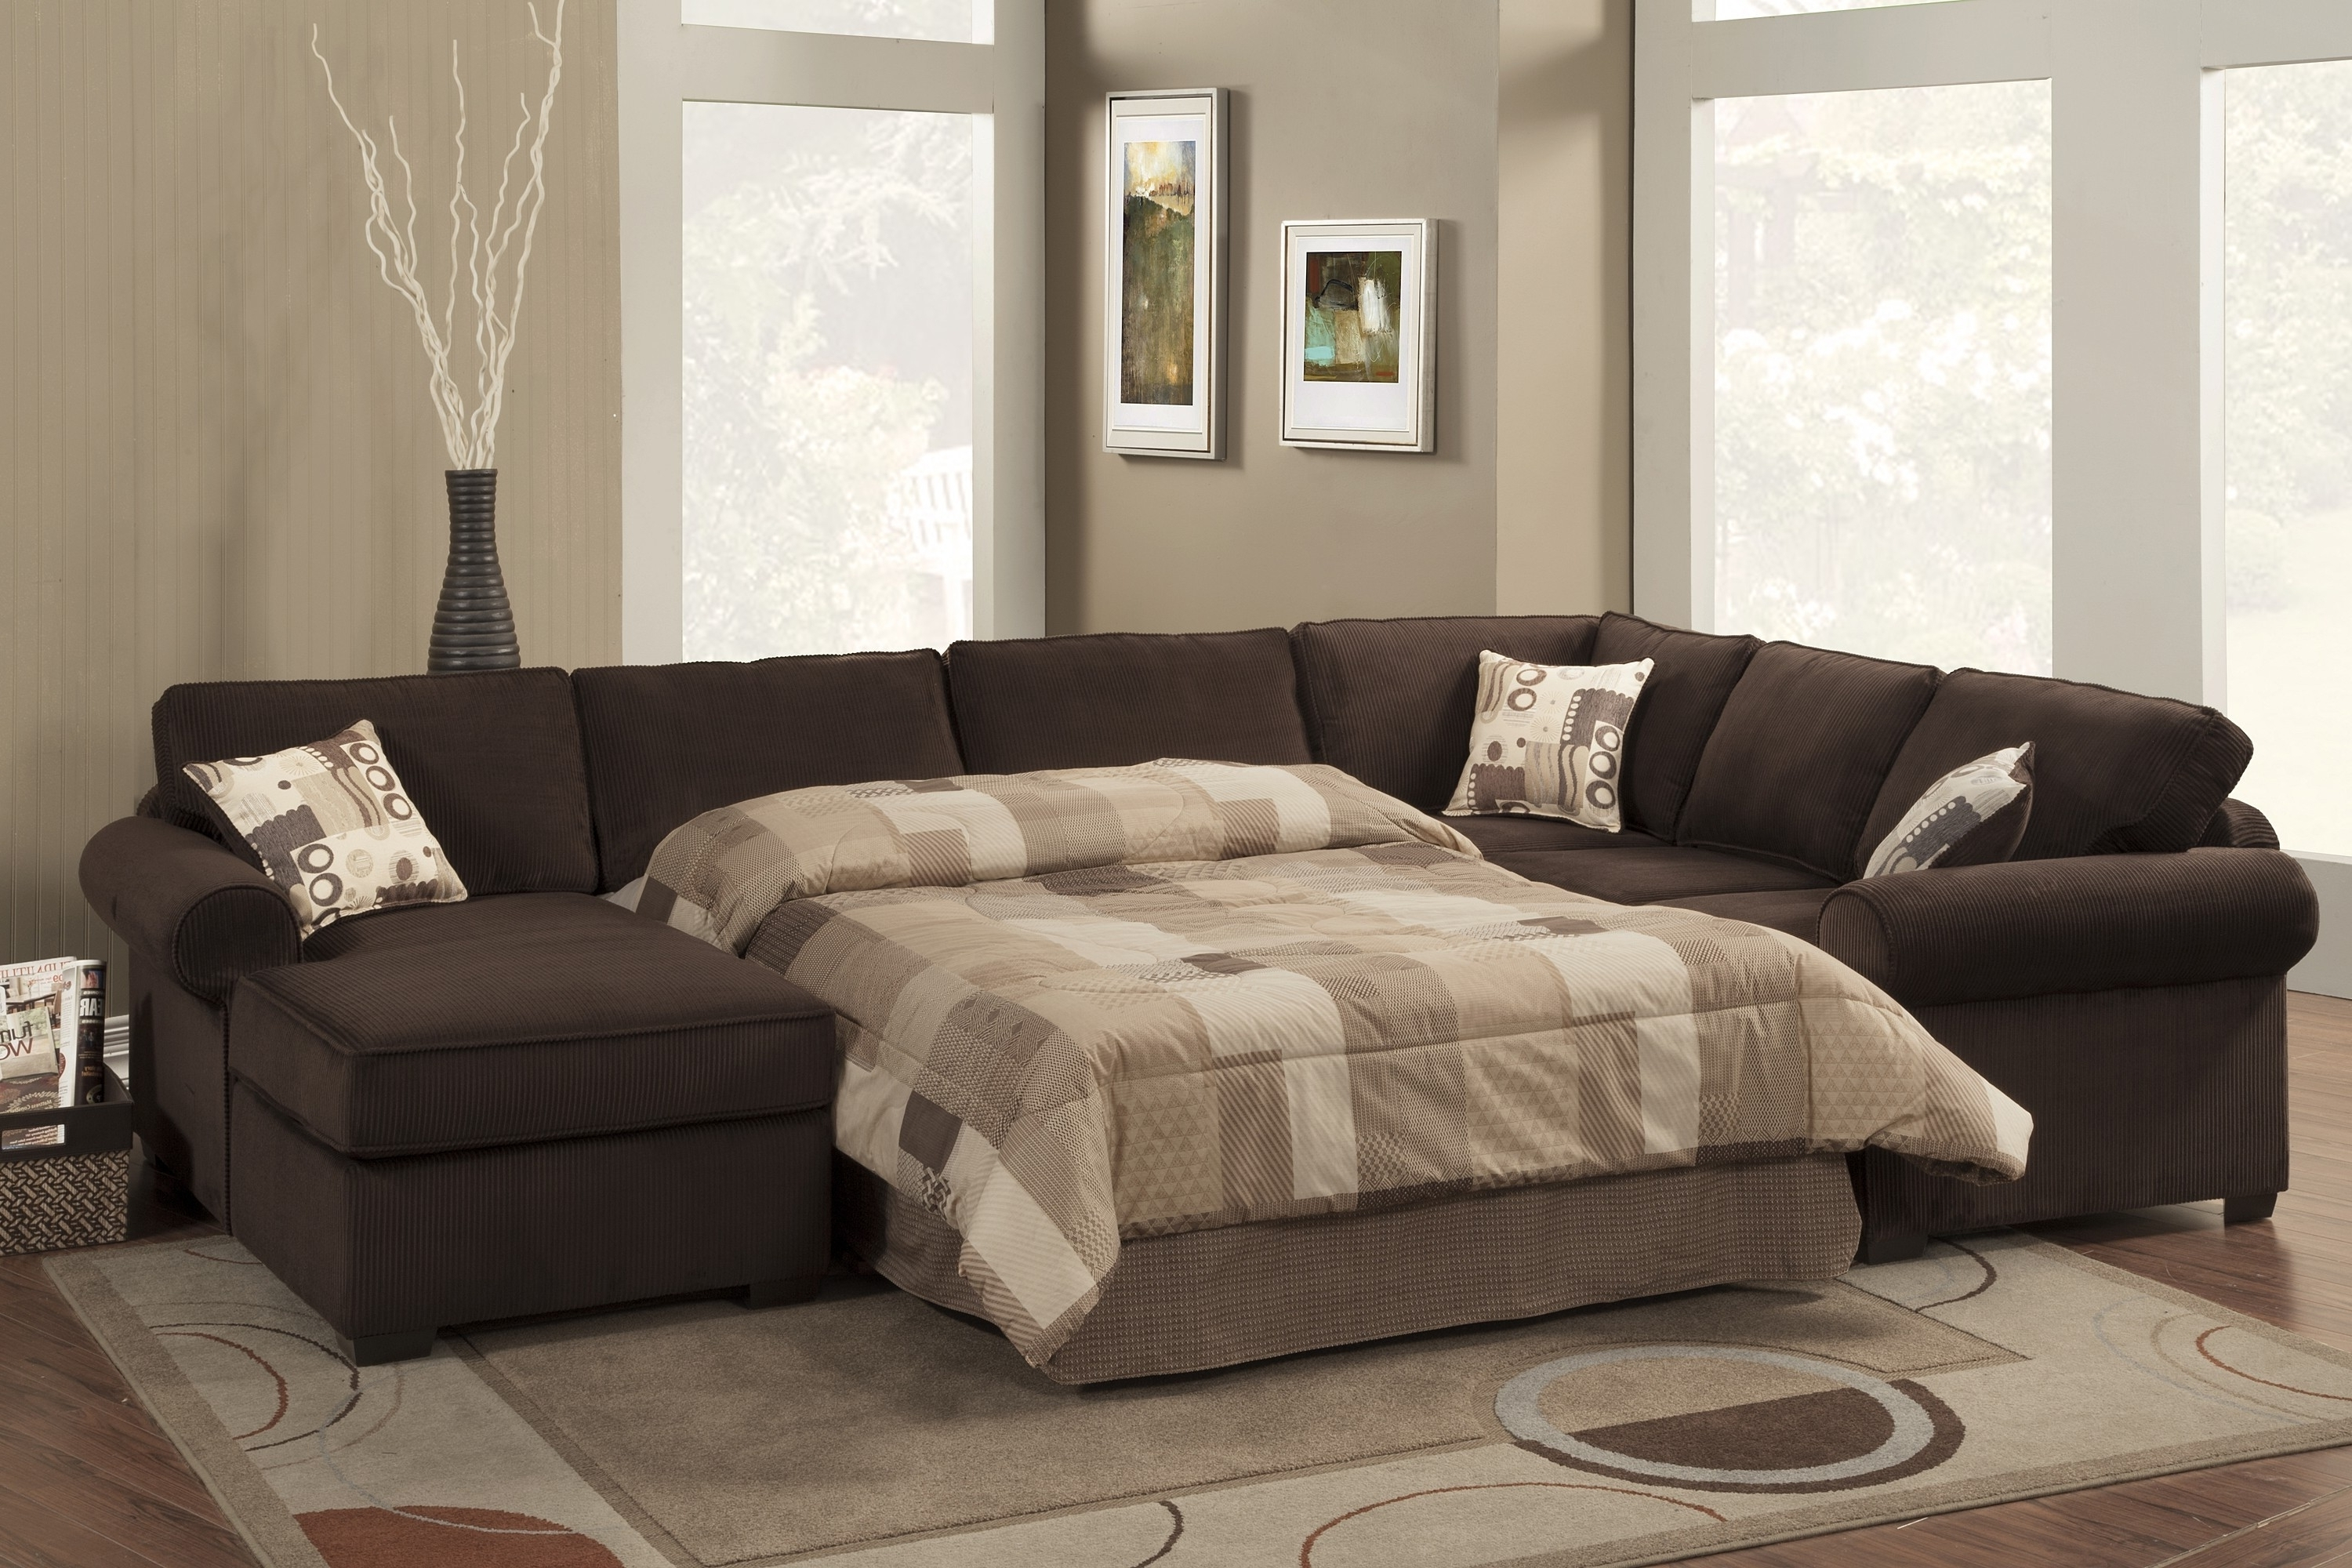 3 Piece Sectional Sofa With Sleeper (View 6 of 20)